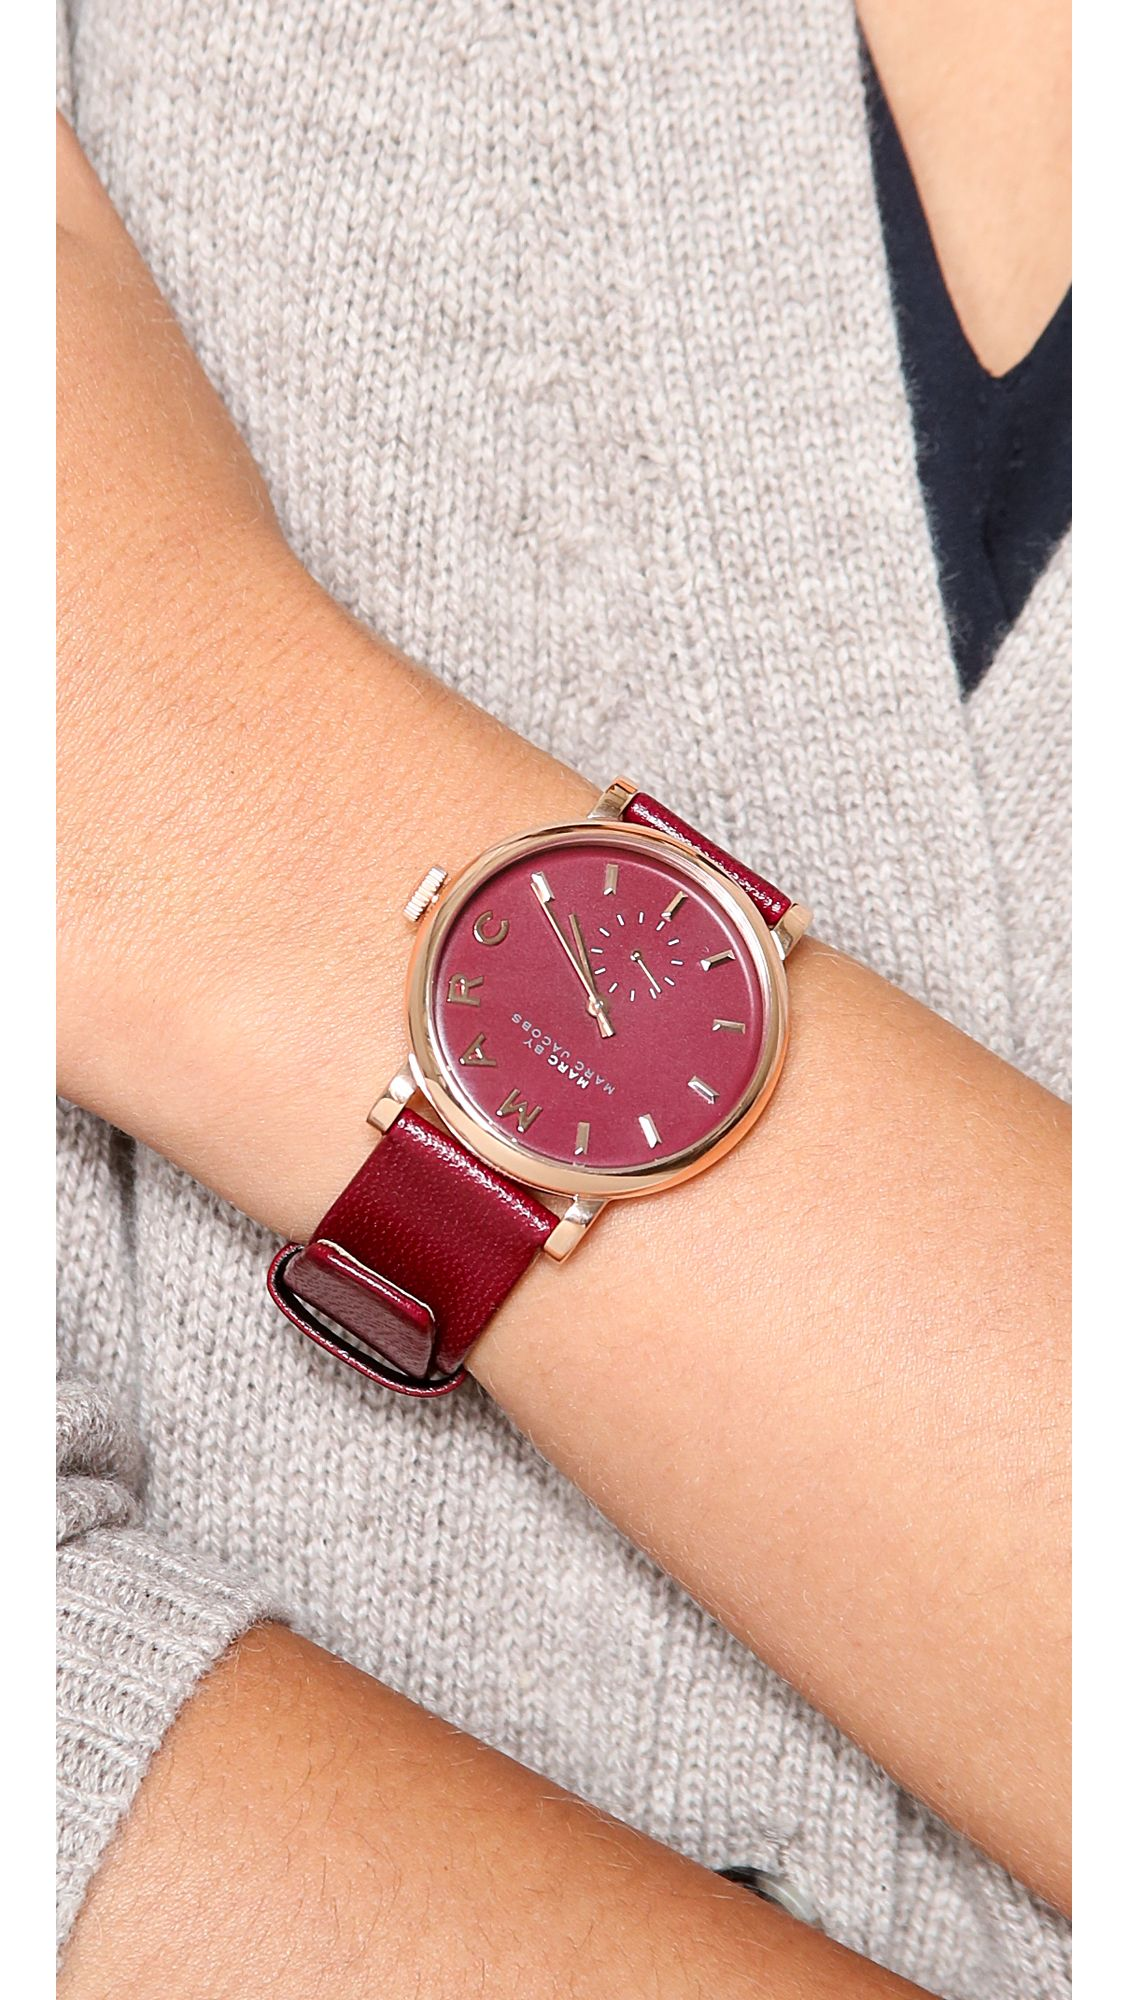 watch brand tictail watches men maroon famous luxury wrist top women and demonshop fashion